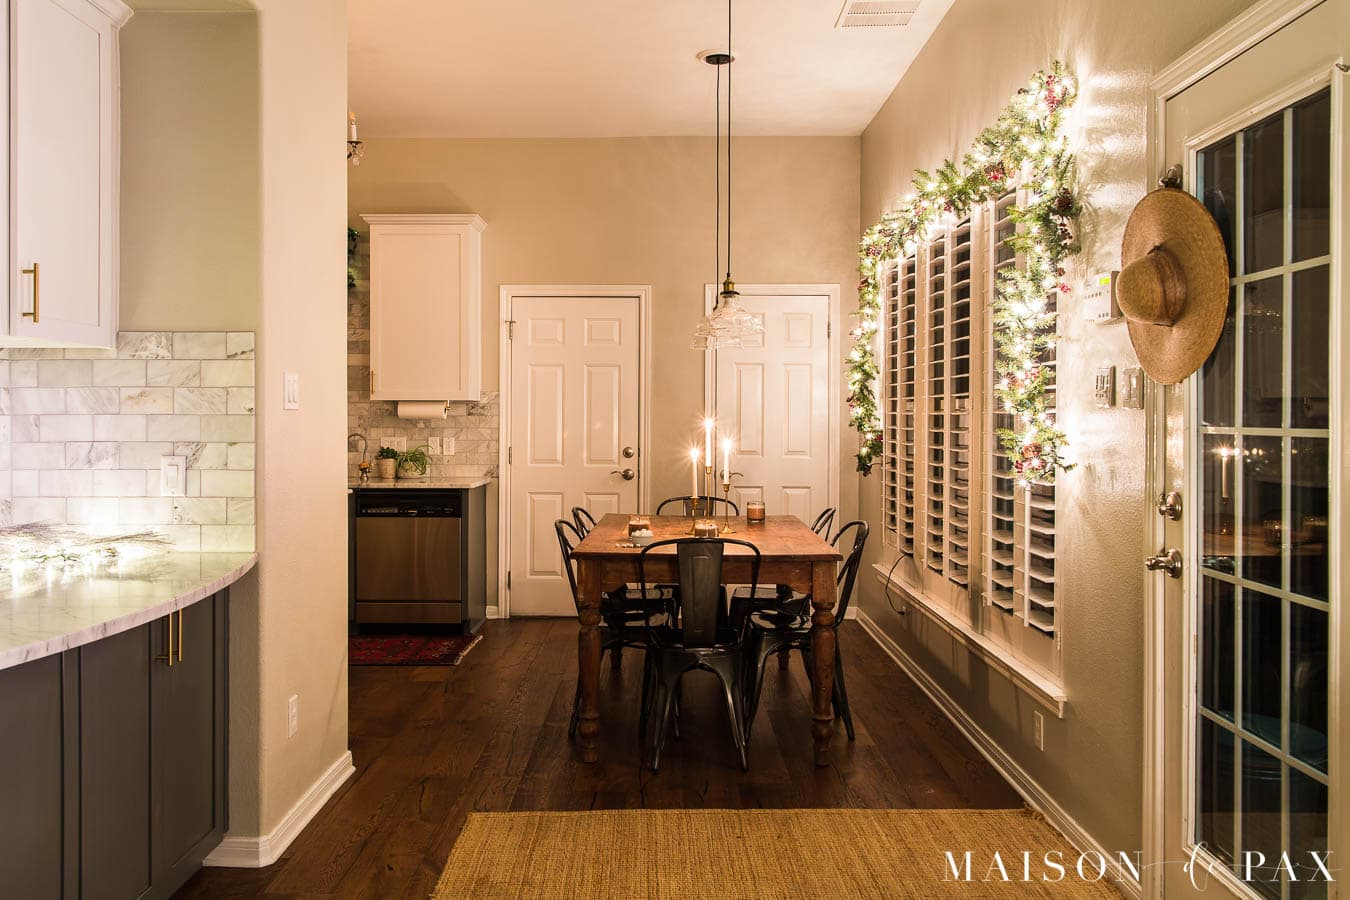 kitchen table and bar with twinkly lights and garland | Maison de Pax